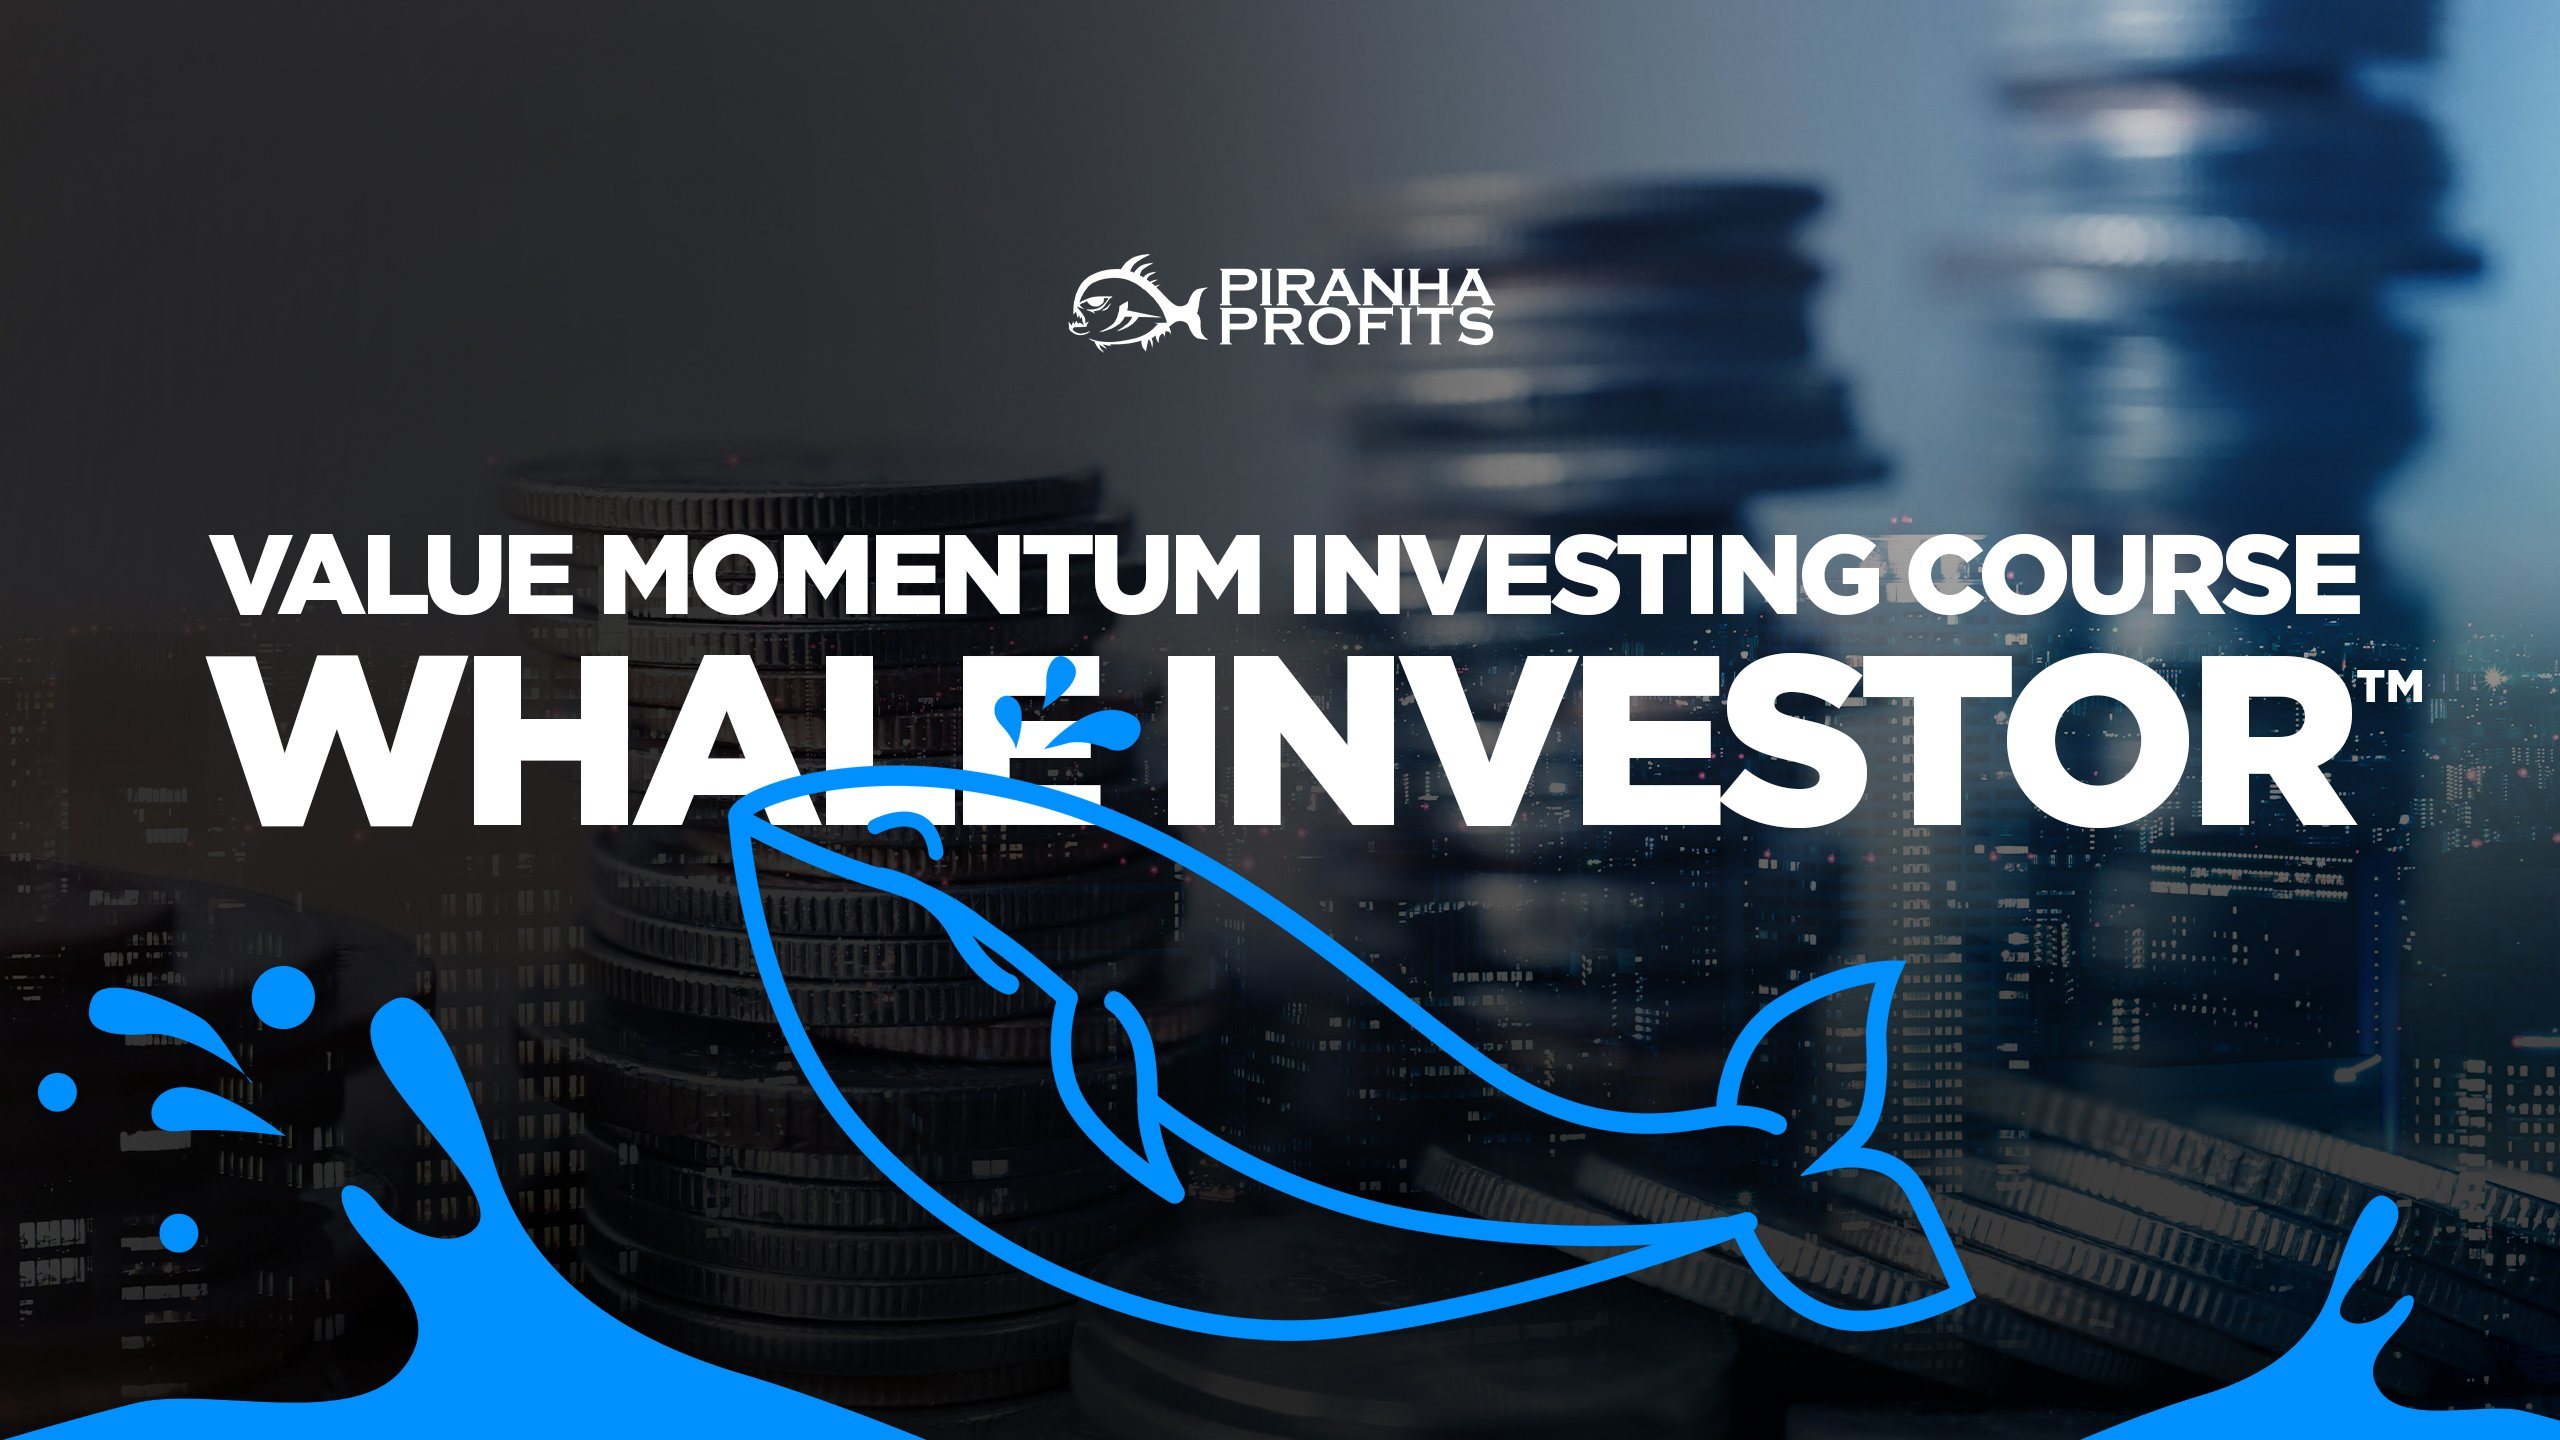 Whale Investor Value Momentum Investing course banner